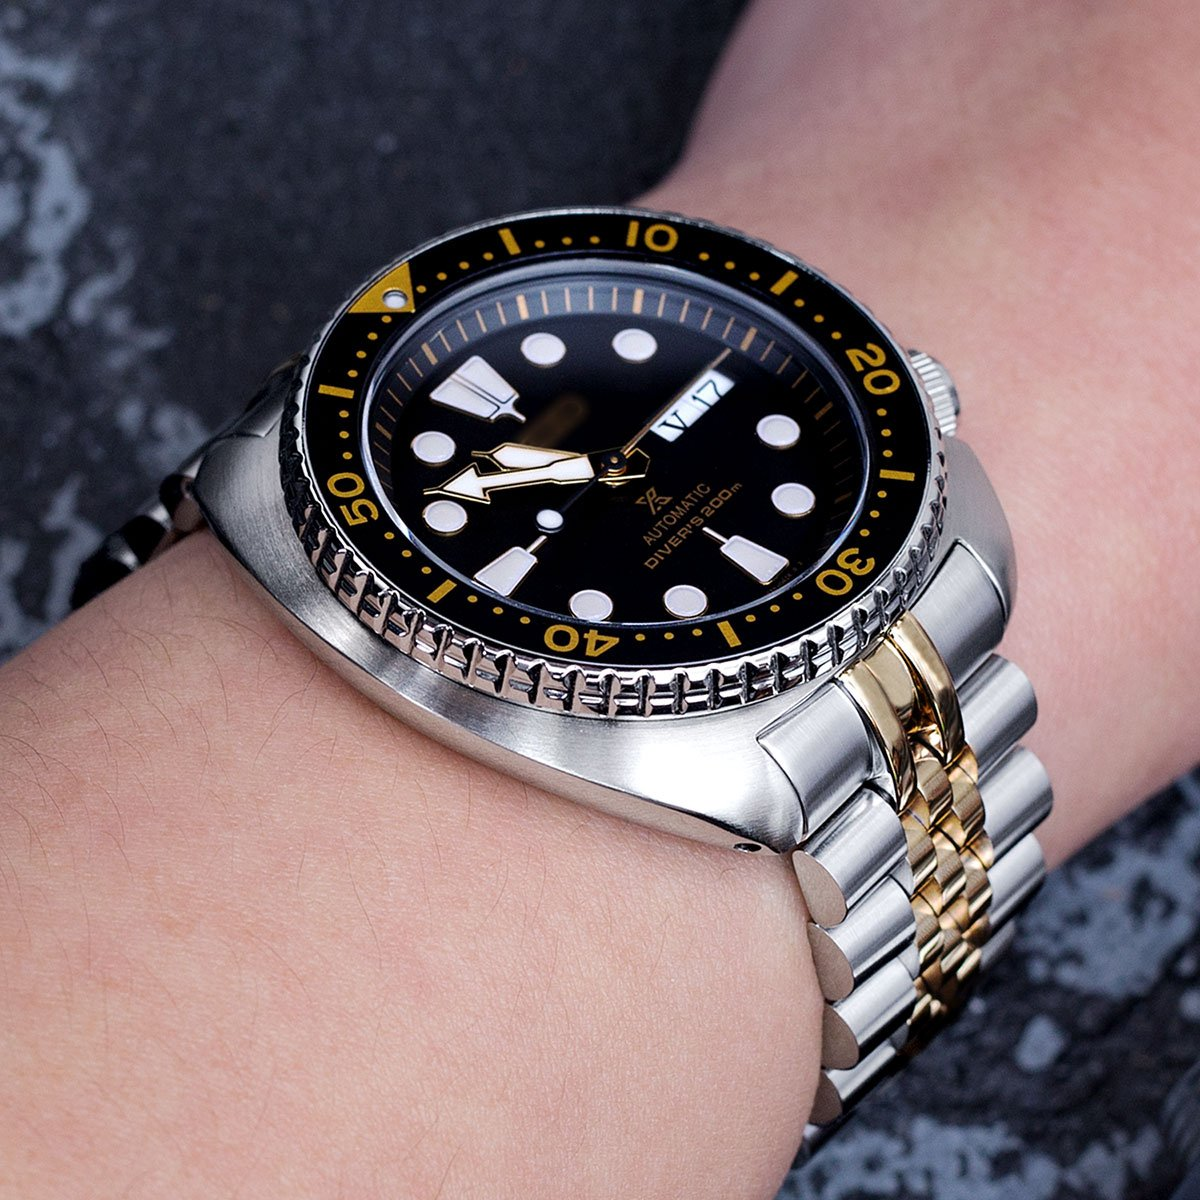 22mm Super 3D Jubilee Watch Bracelet for Seiko New Turtles SRP775, 2-Tone, Button Chamfer by Seiko Replacement by MiLTAT (Image #2)